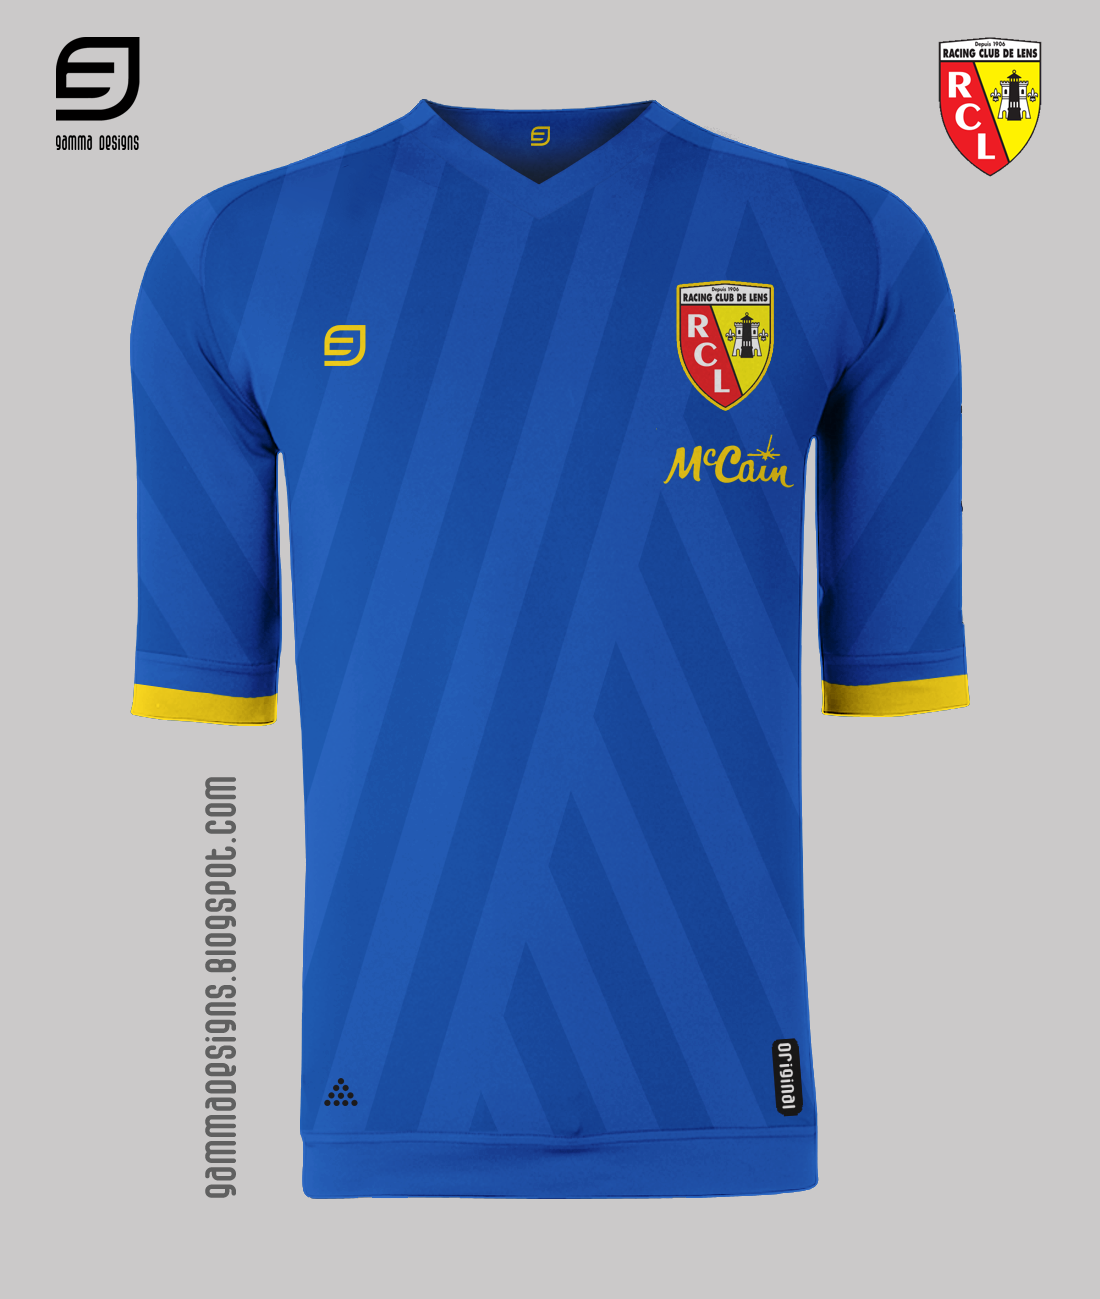 Gamma Designs Small Tribute To Ligue 2 Rc Lens